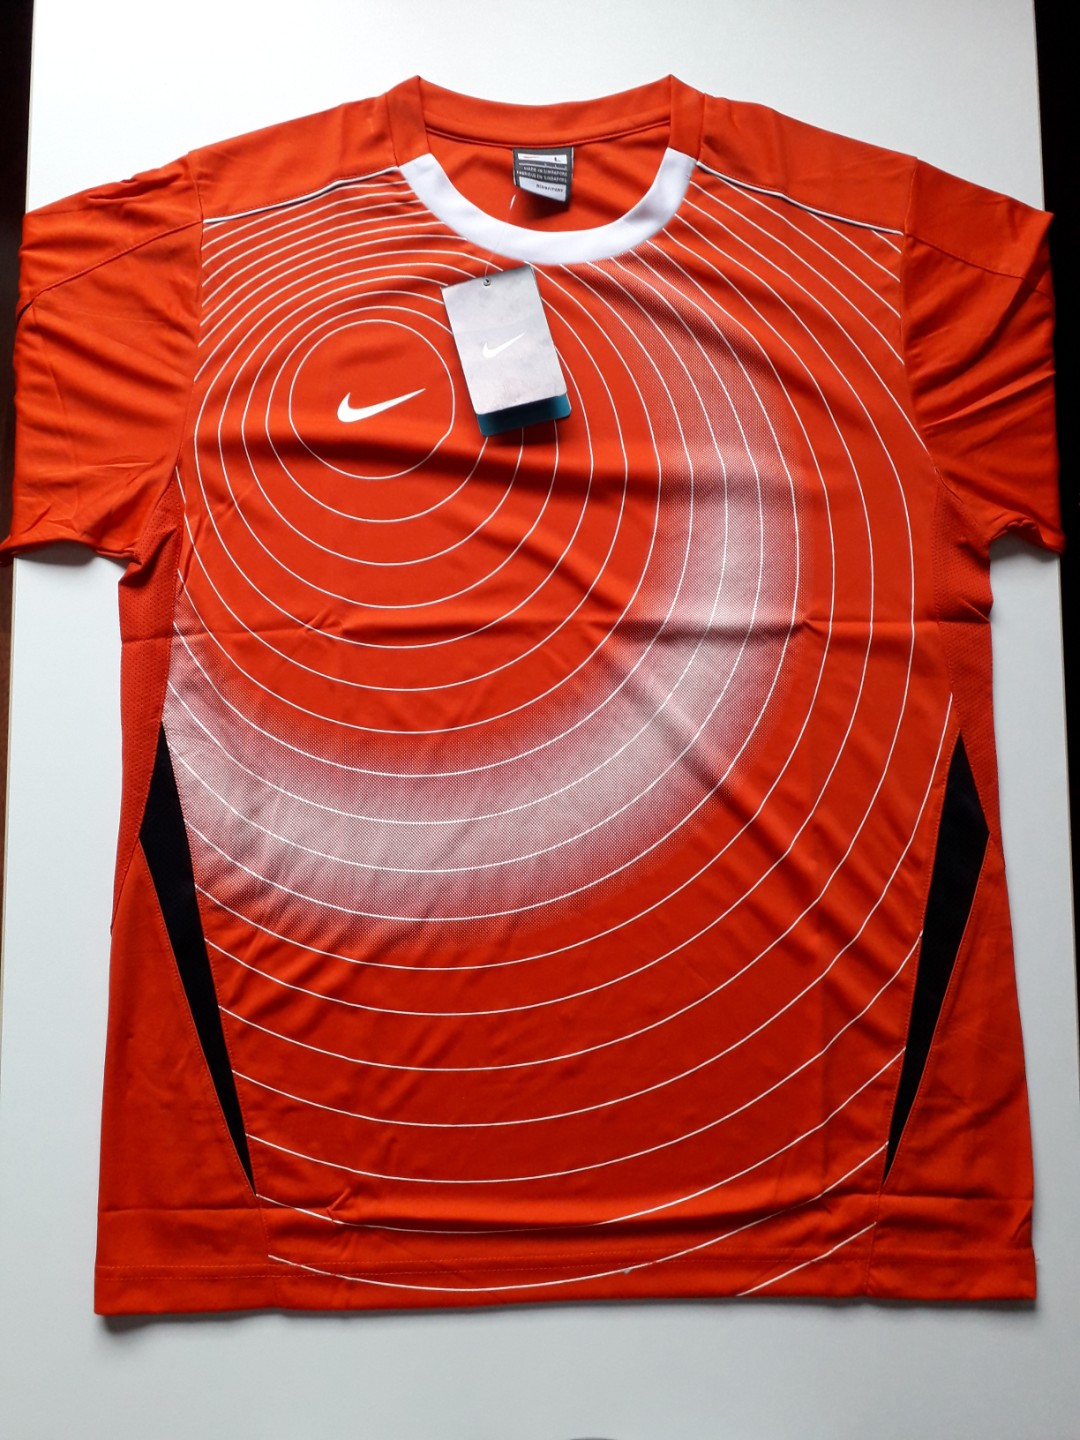 7a47dfb5f Nike Graphic Dry Fit T Shirt ORANGE, Sports, Sports Apparel on Carousell